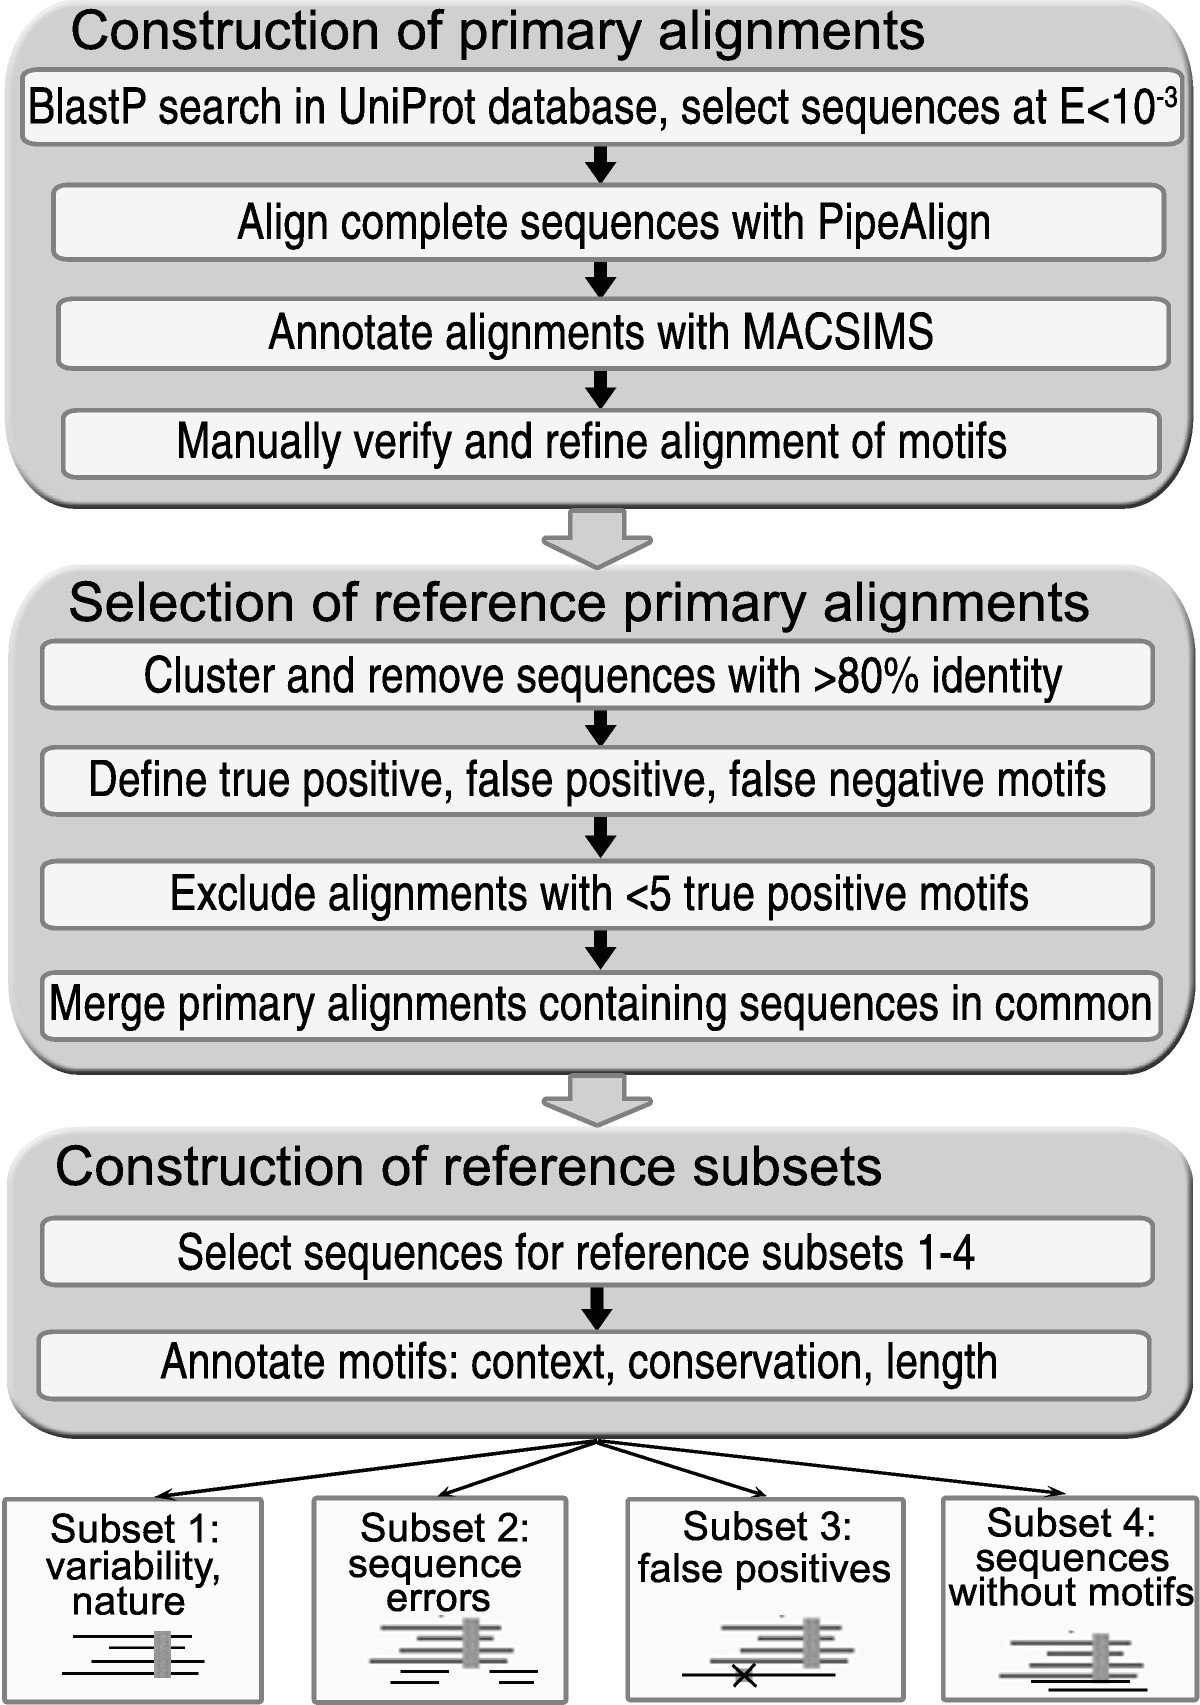 http://static-content.springer.com/image/art%3A10.1186%2F1471-2105-9-213/MediaObjects/12859_2007_Article_2198_Fig1_HTML.jpg